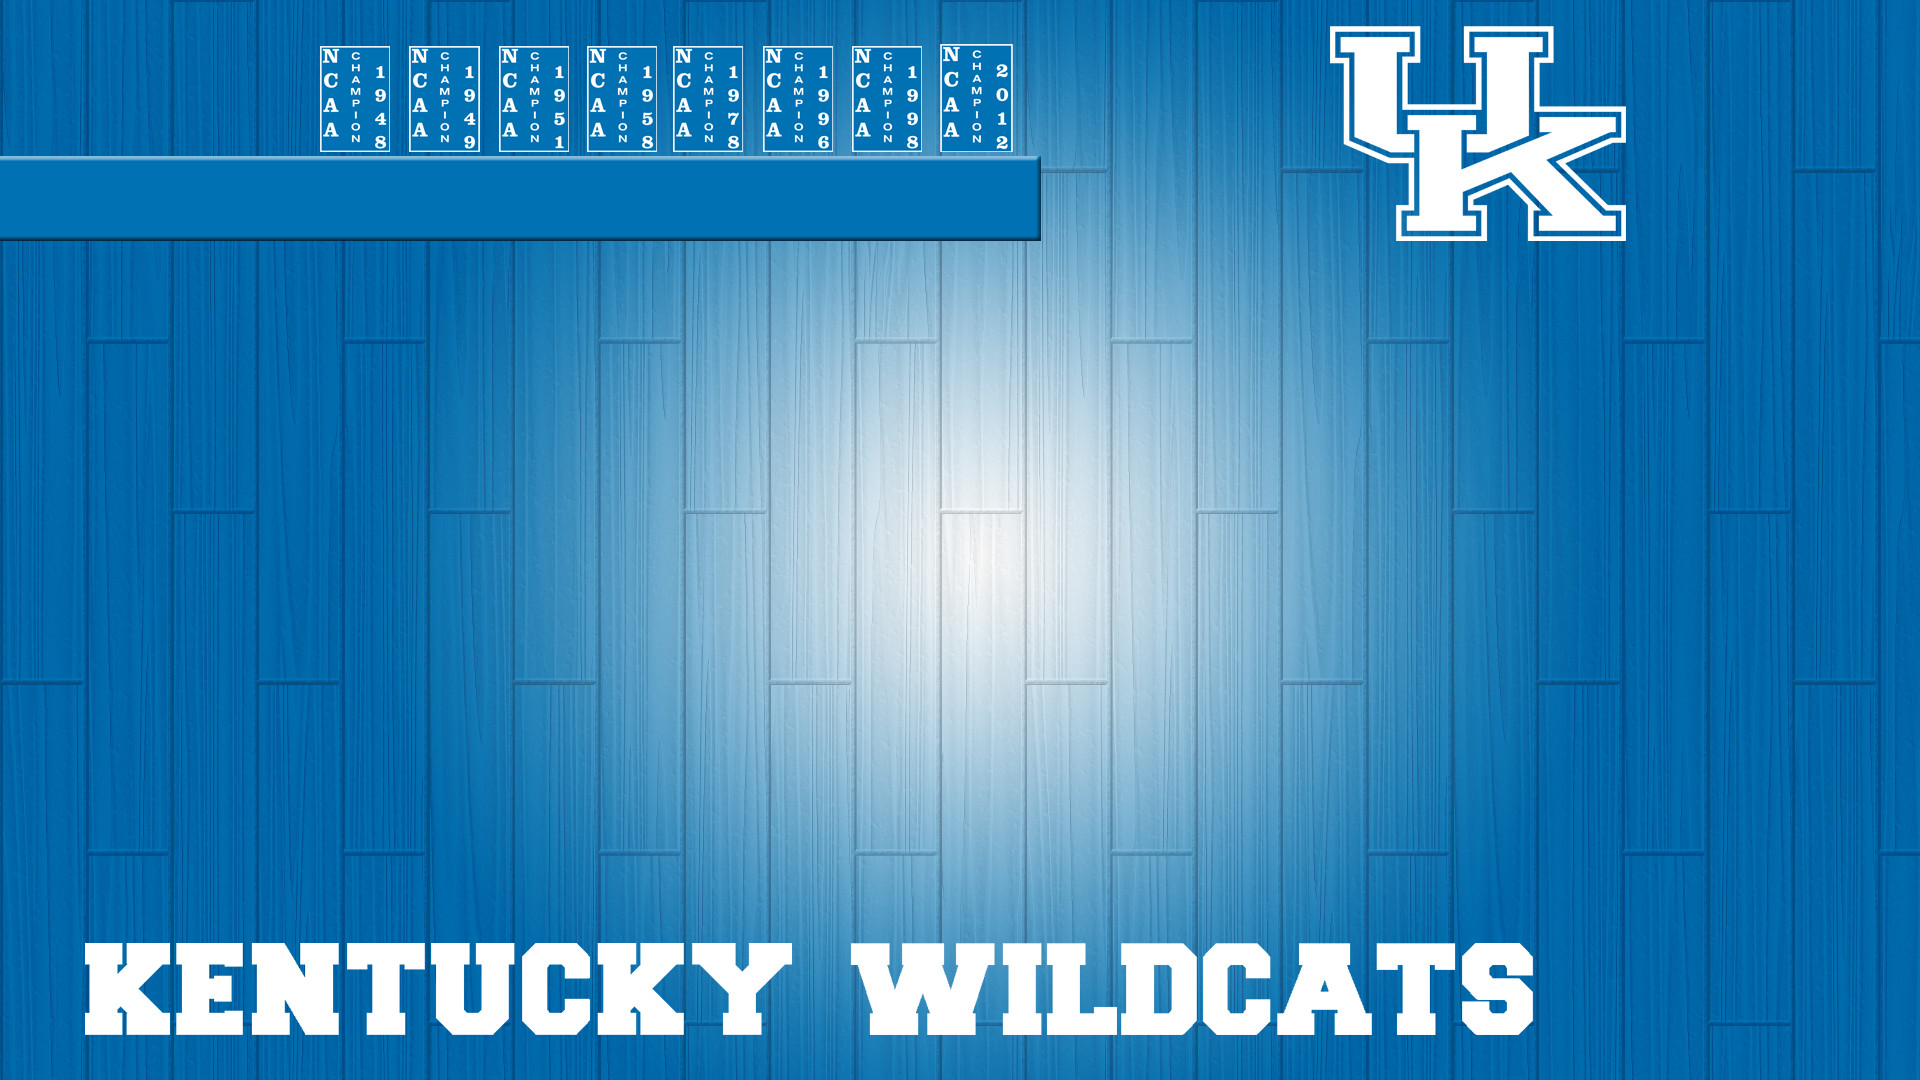 1920x1080 Cool Kentucky Wildcats Wallpaper.